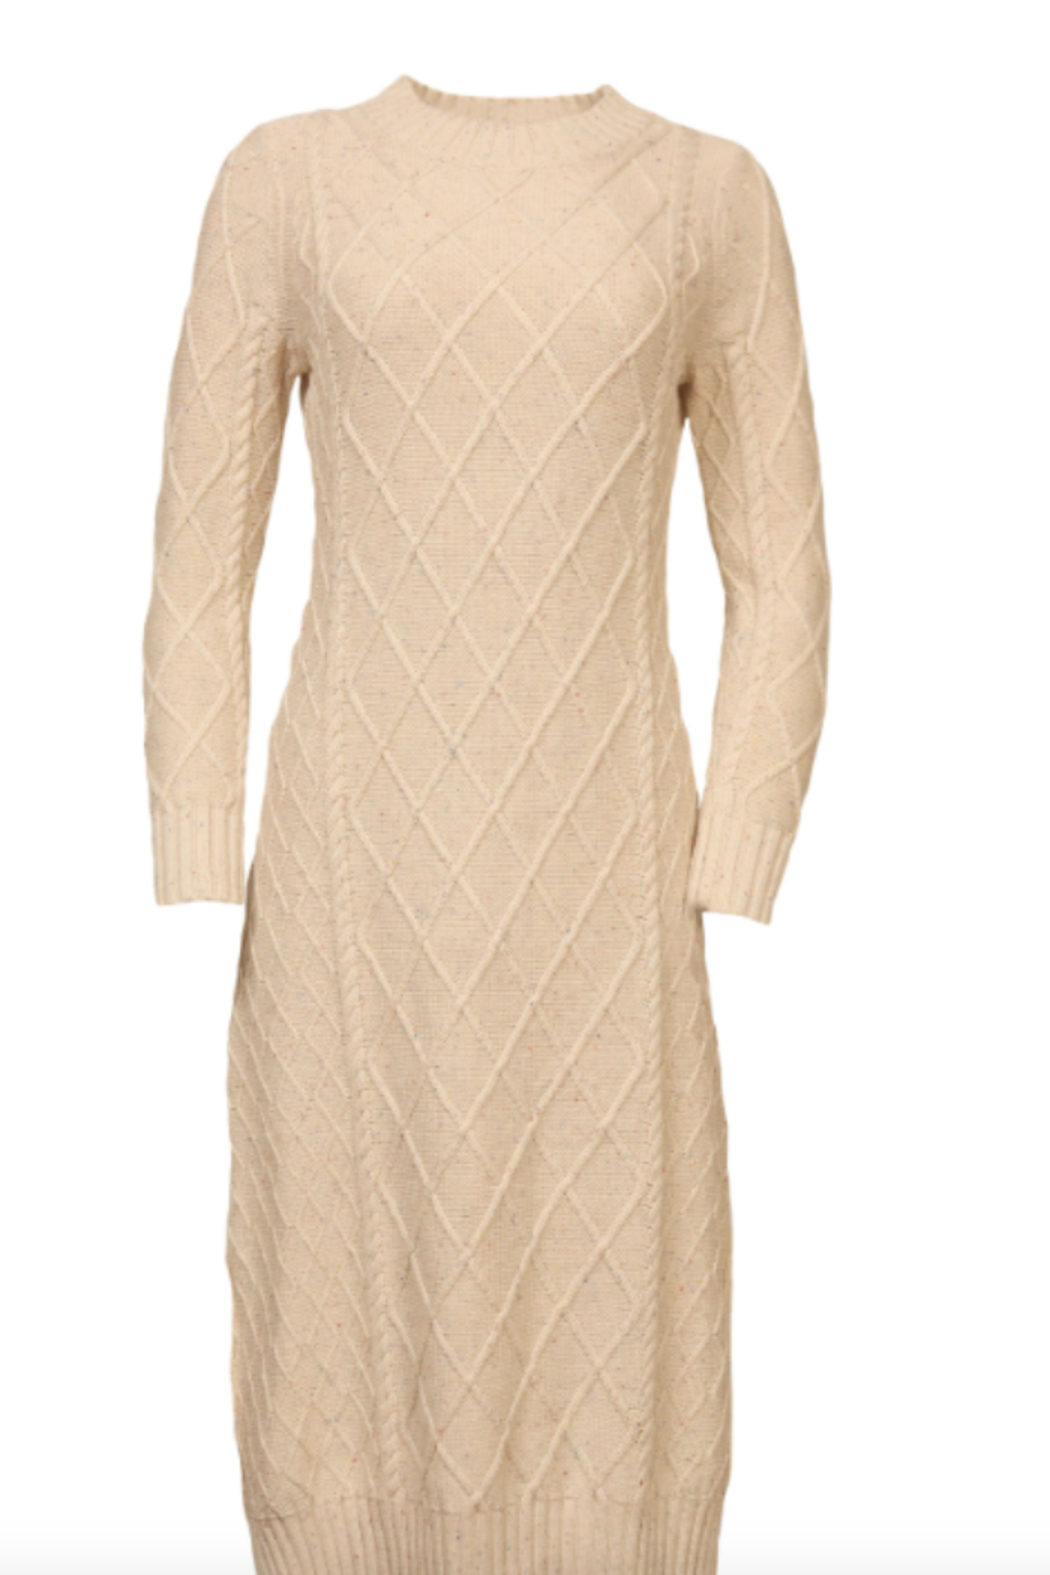 Line & Dot Molly Cable Knit Dress - Main Image